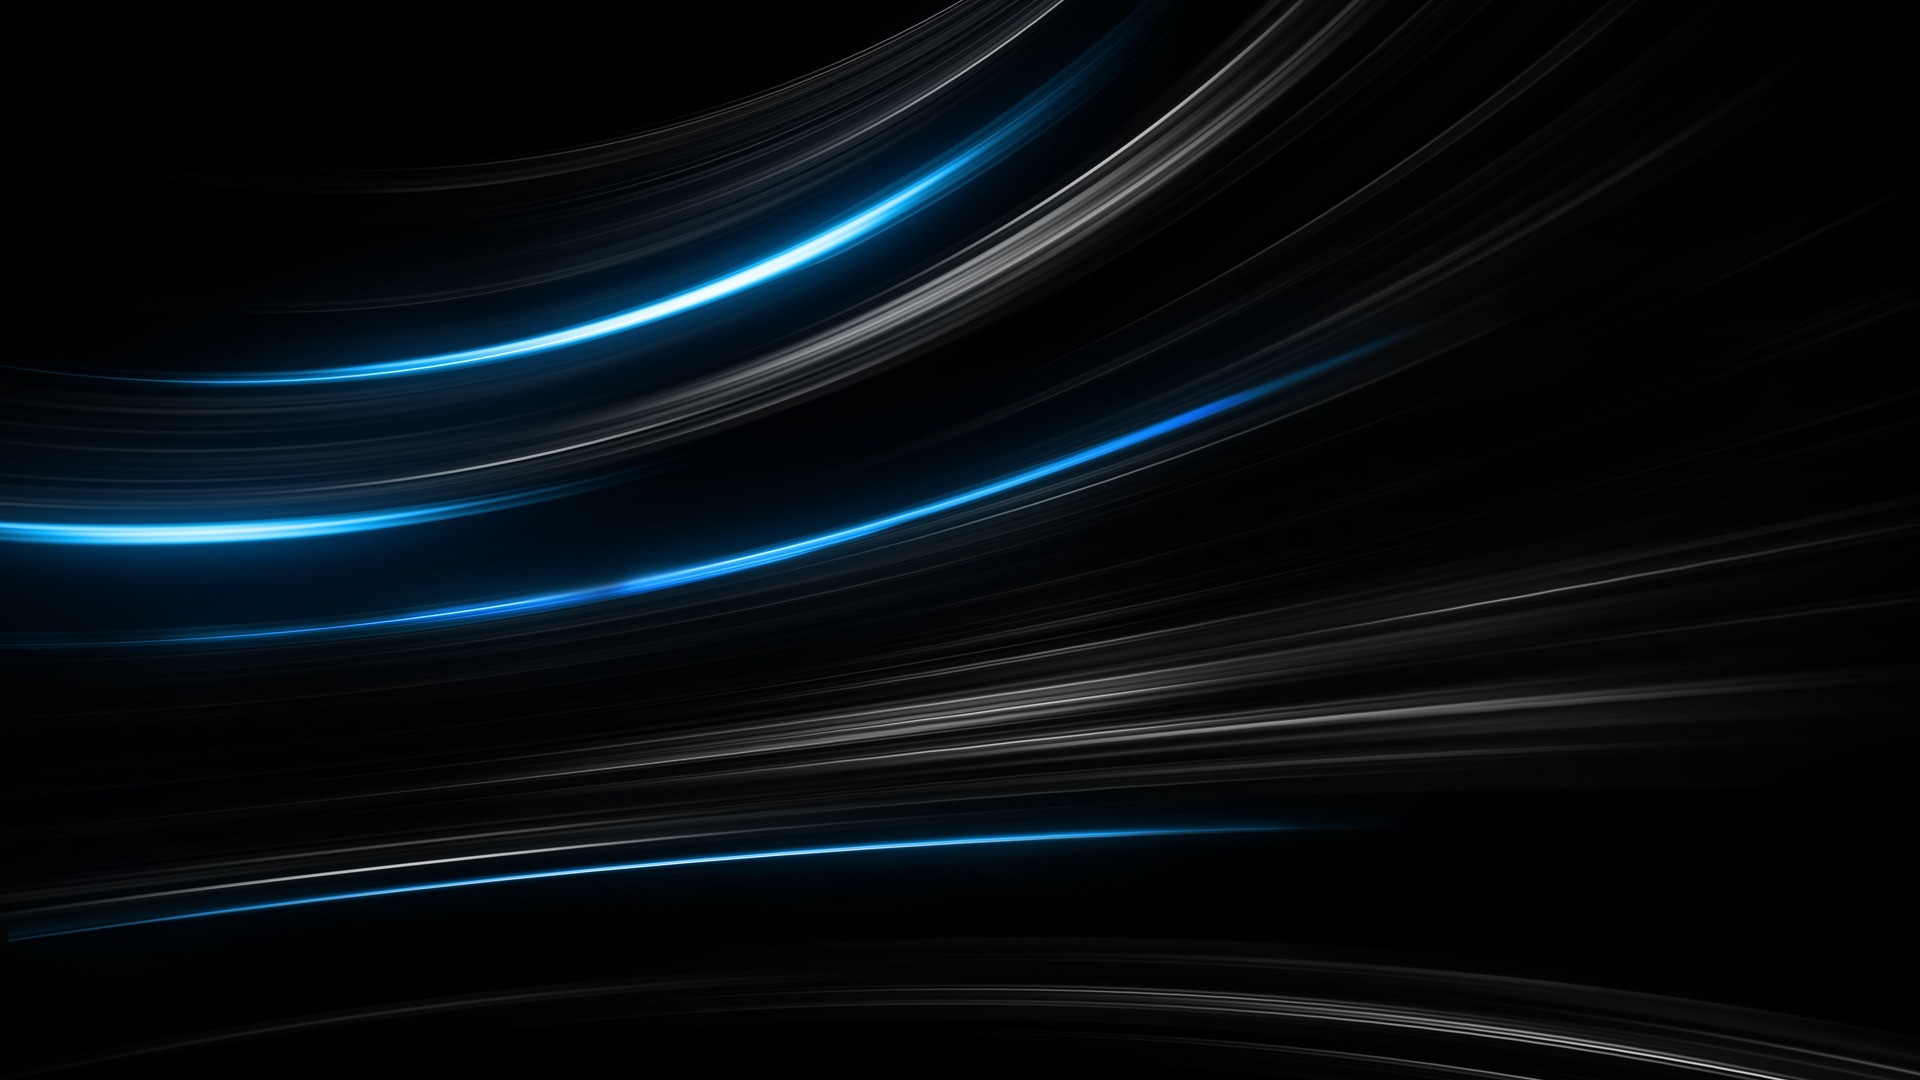 1080P Blue Wallpaper 1920x1080